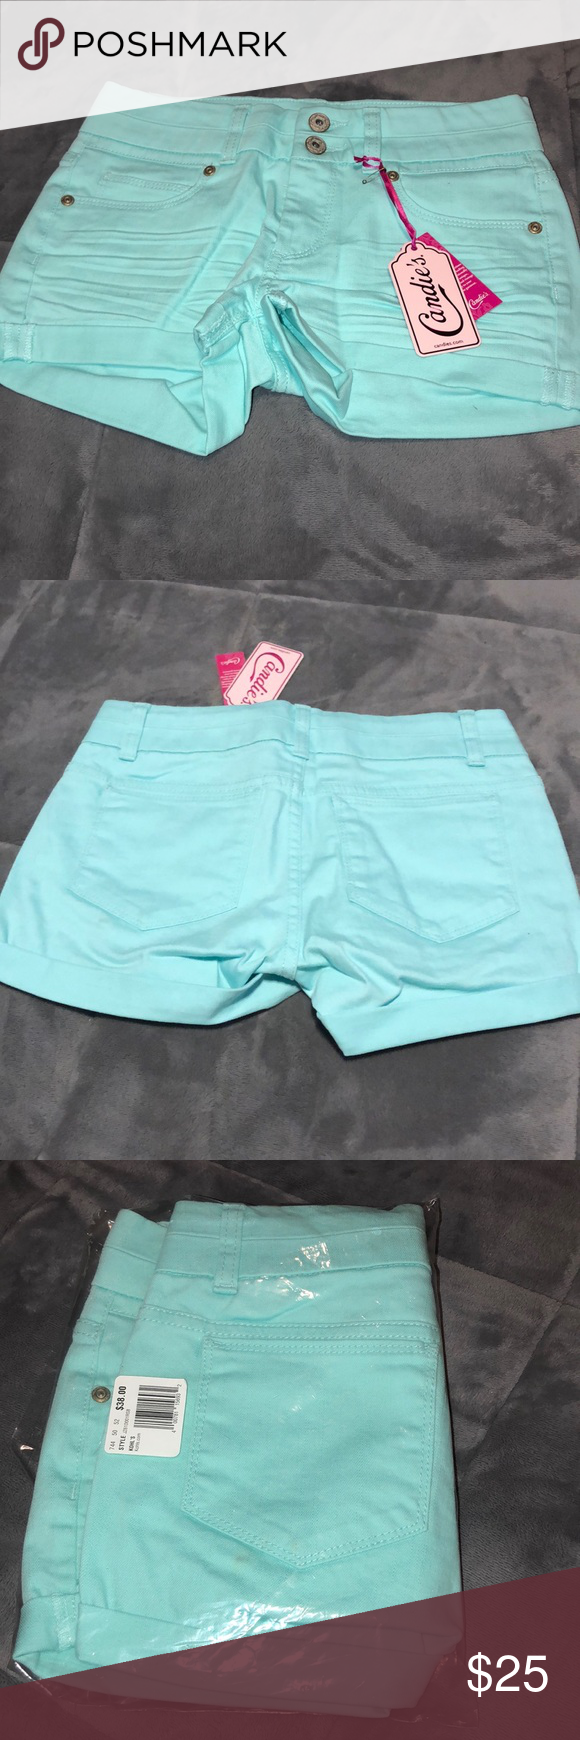 Candies Light Blue Shorts Candies Light Blue Shorts Candie's Shorts #lightblueshorts